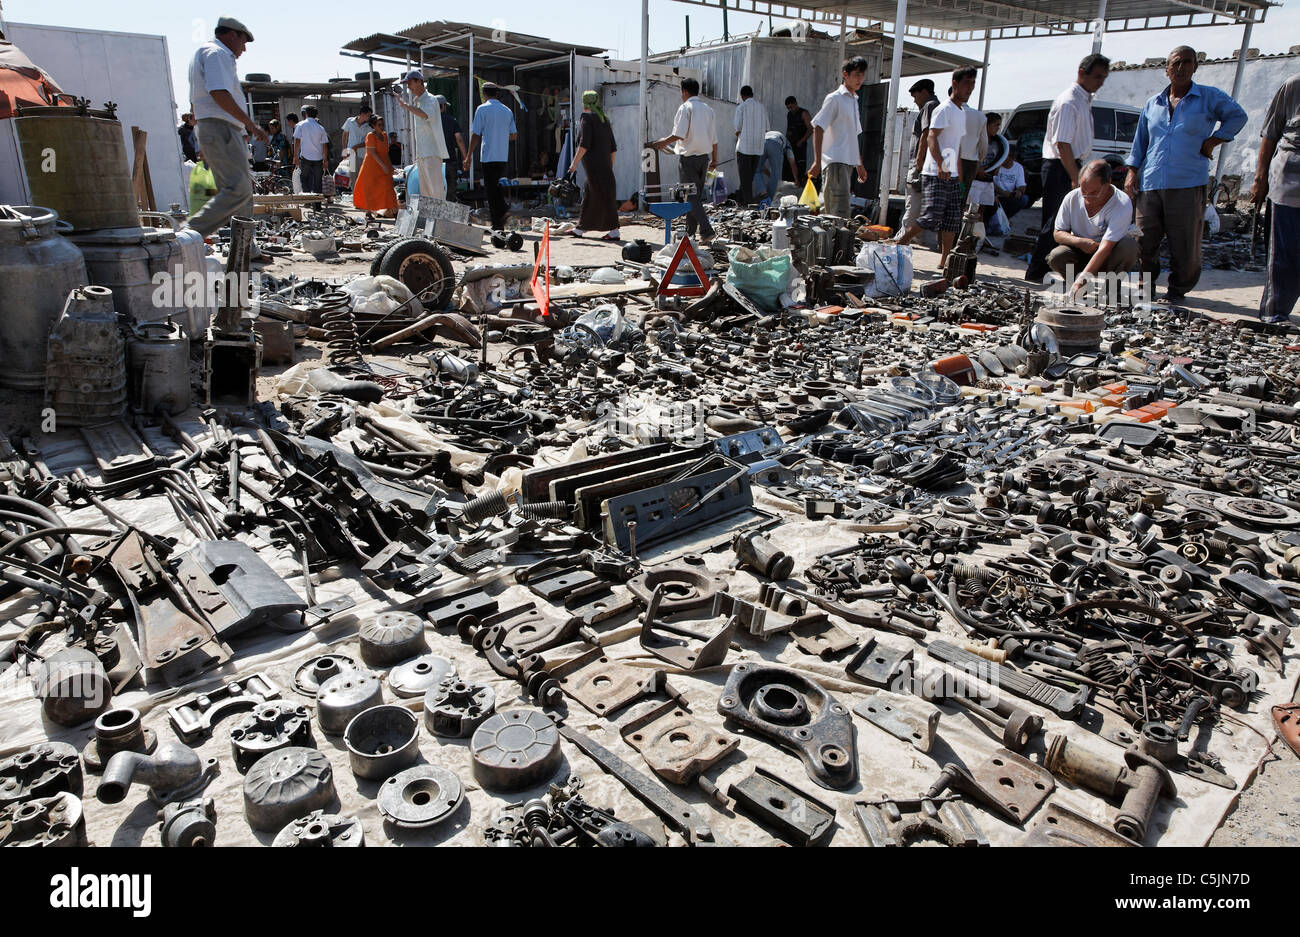 Used Car Parts For Sale >> Car Parts For Sale Stock Photos Car Parts For Sale Stock Images